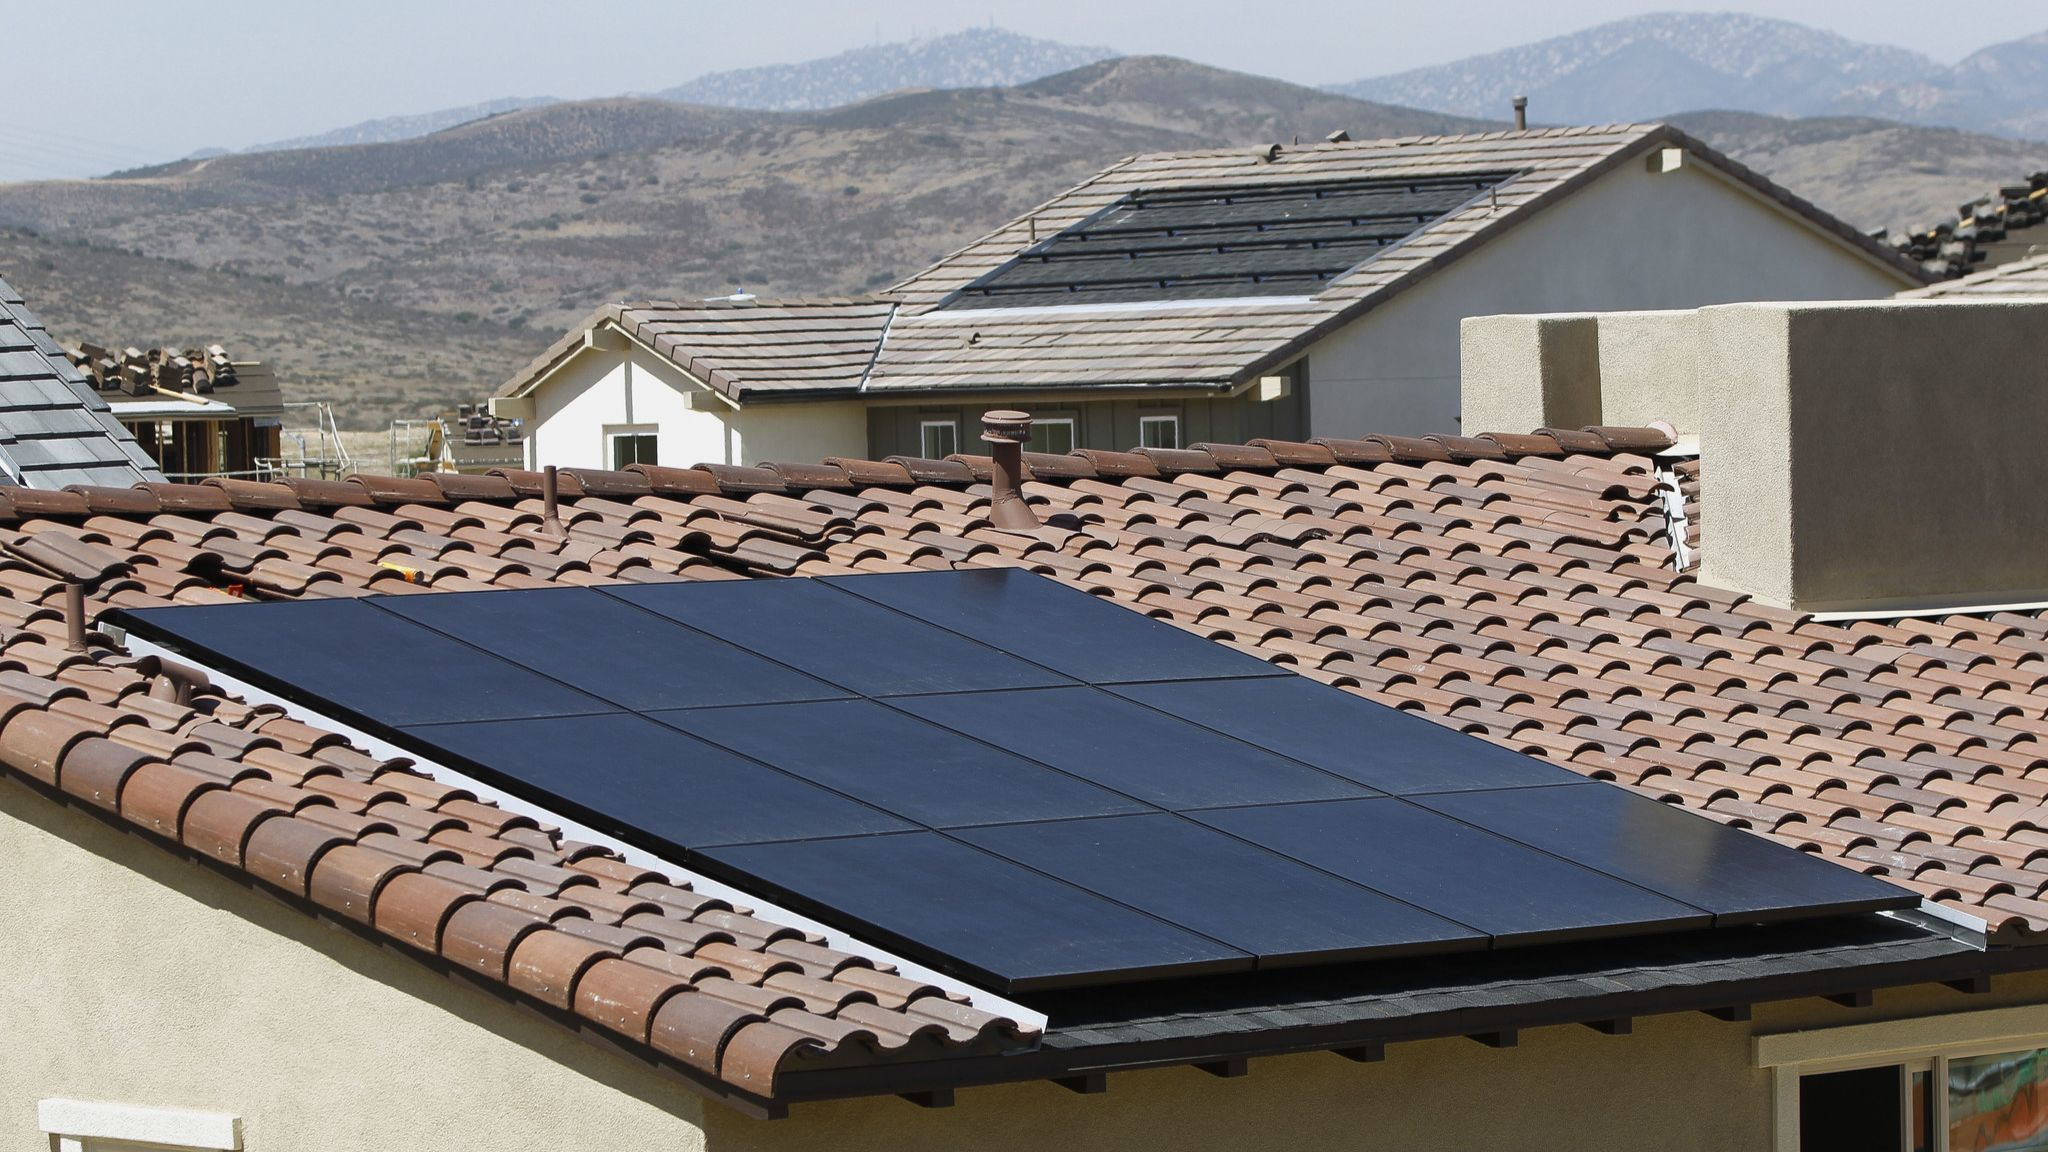 The new solar mandate: A leap forward or a step back?